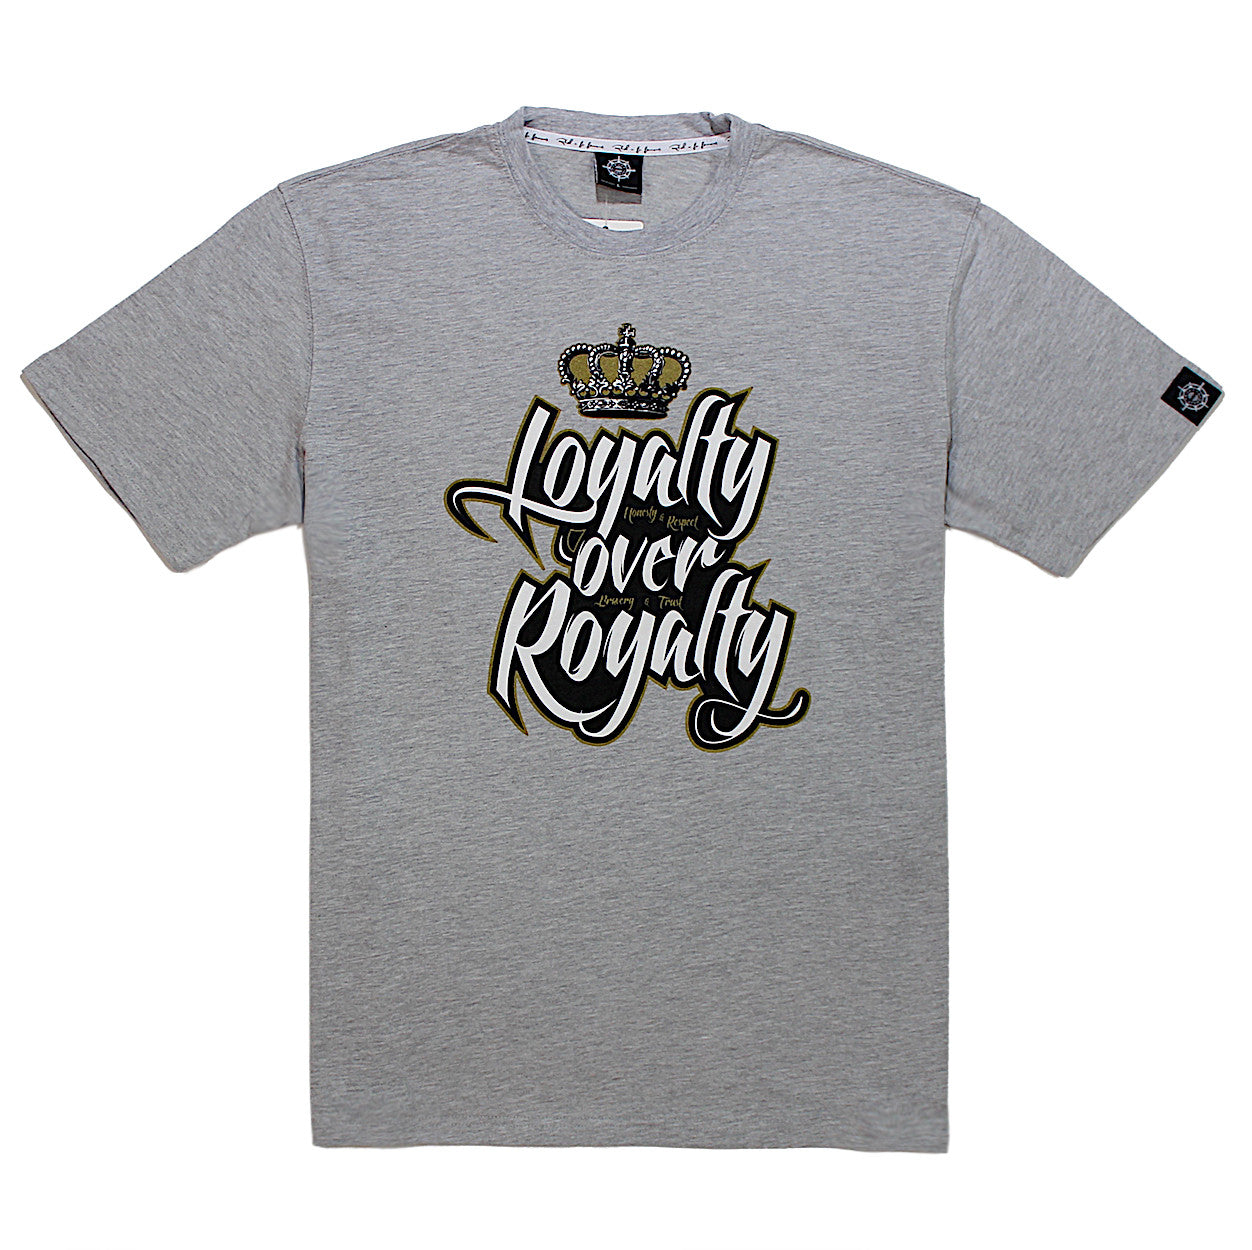 Royalty Over Loyalty Coloring Page: Rich NFN Famous Loyalty Over Royalty Tee In Gray